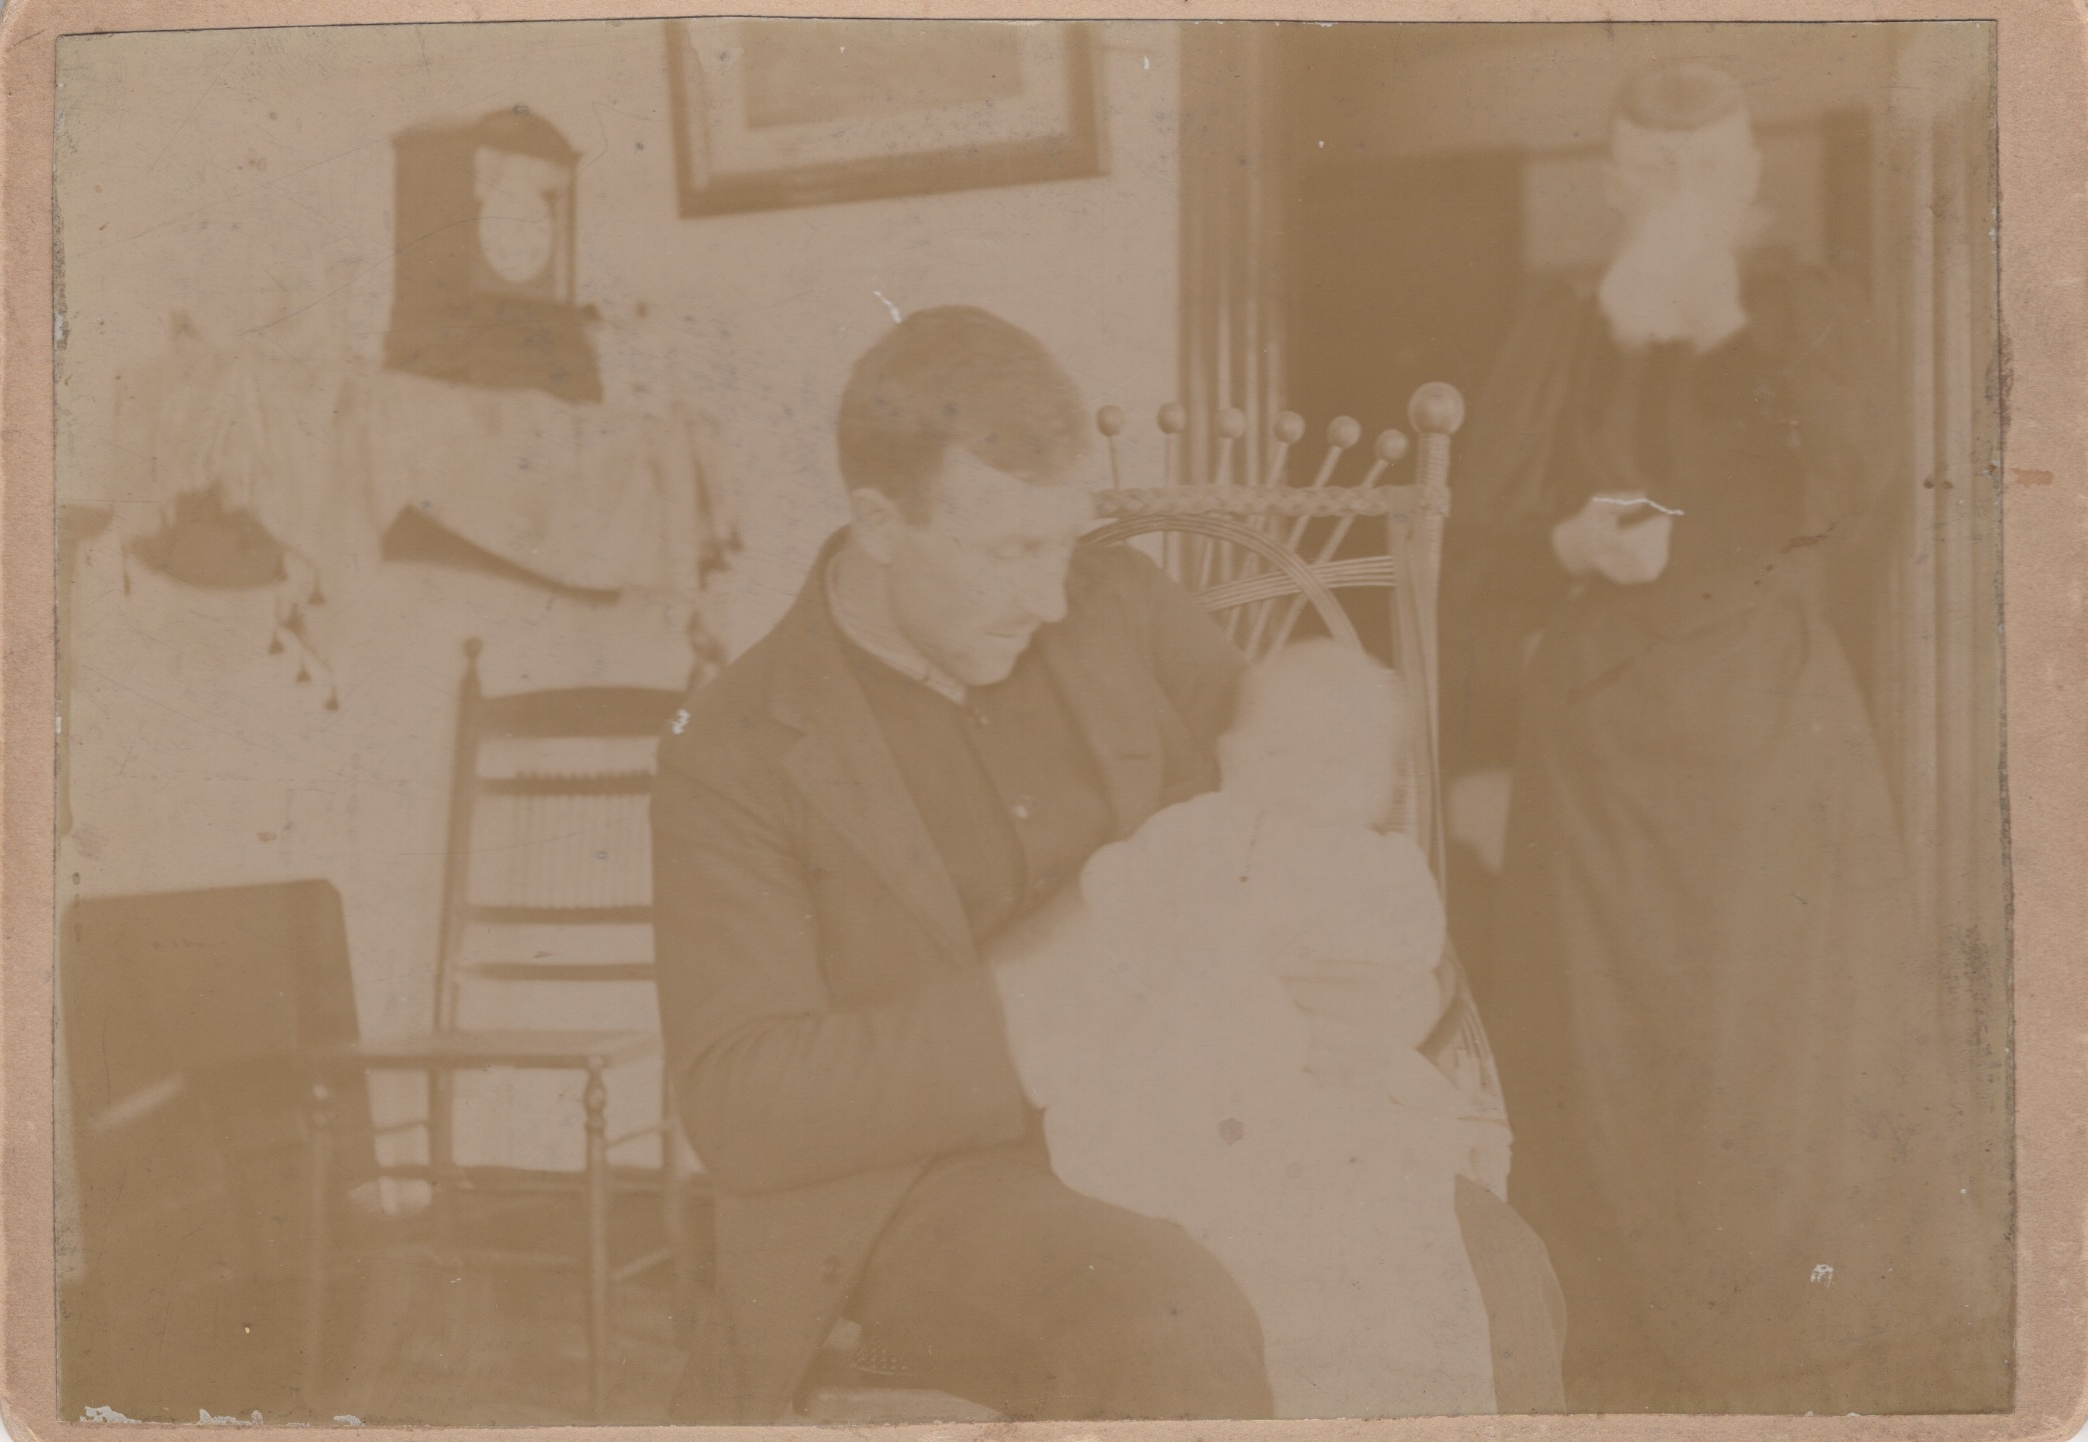 Charles I Young Sr., Baby Frank Young, Mary Young.jpeg